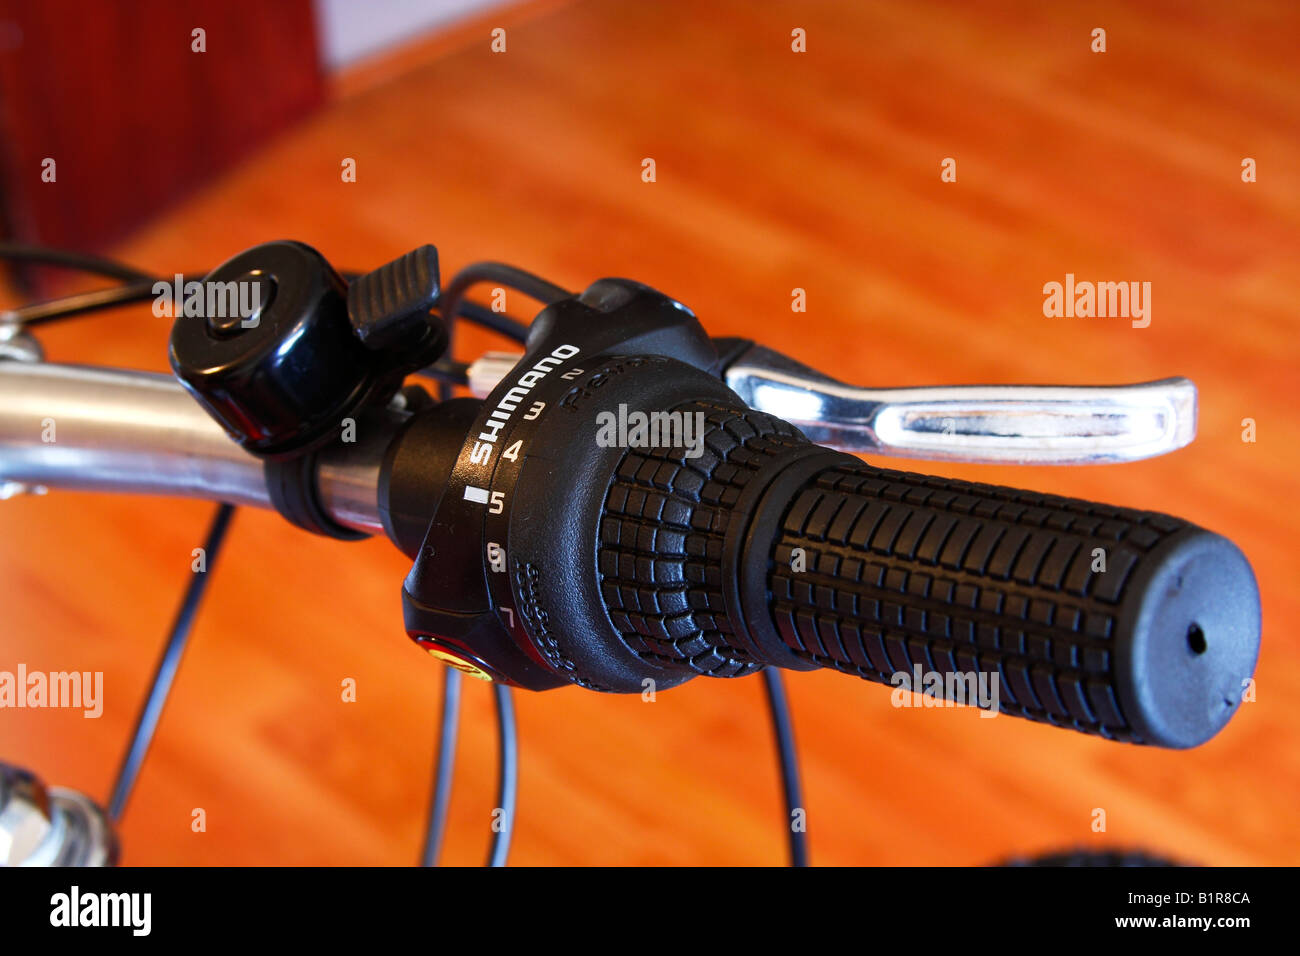 Shimano Geared Bicycle handlebar, close up - Stock Image